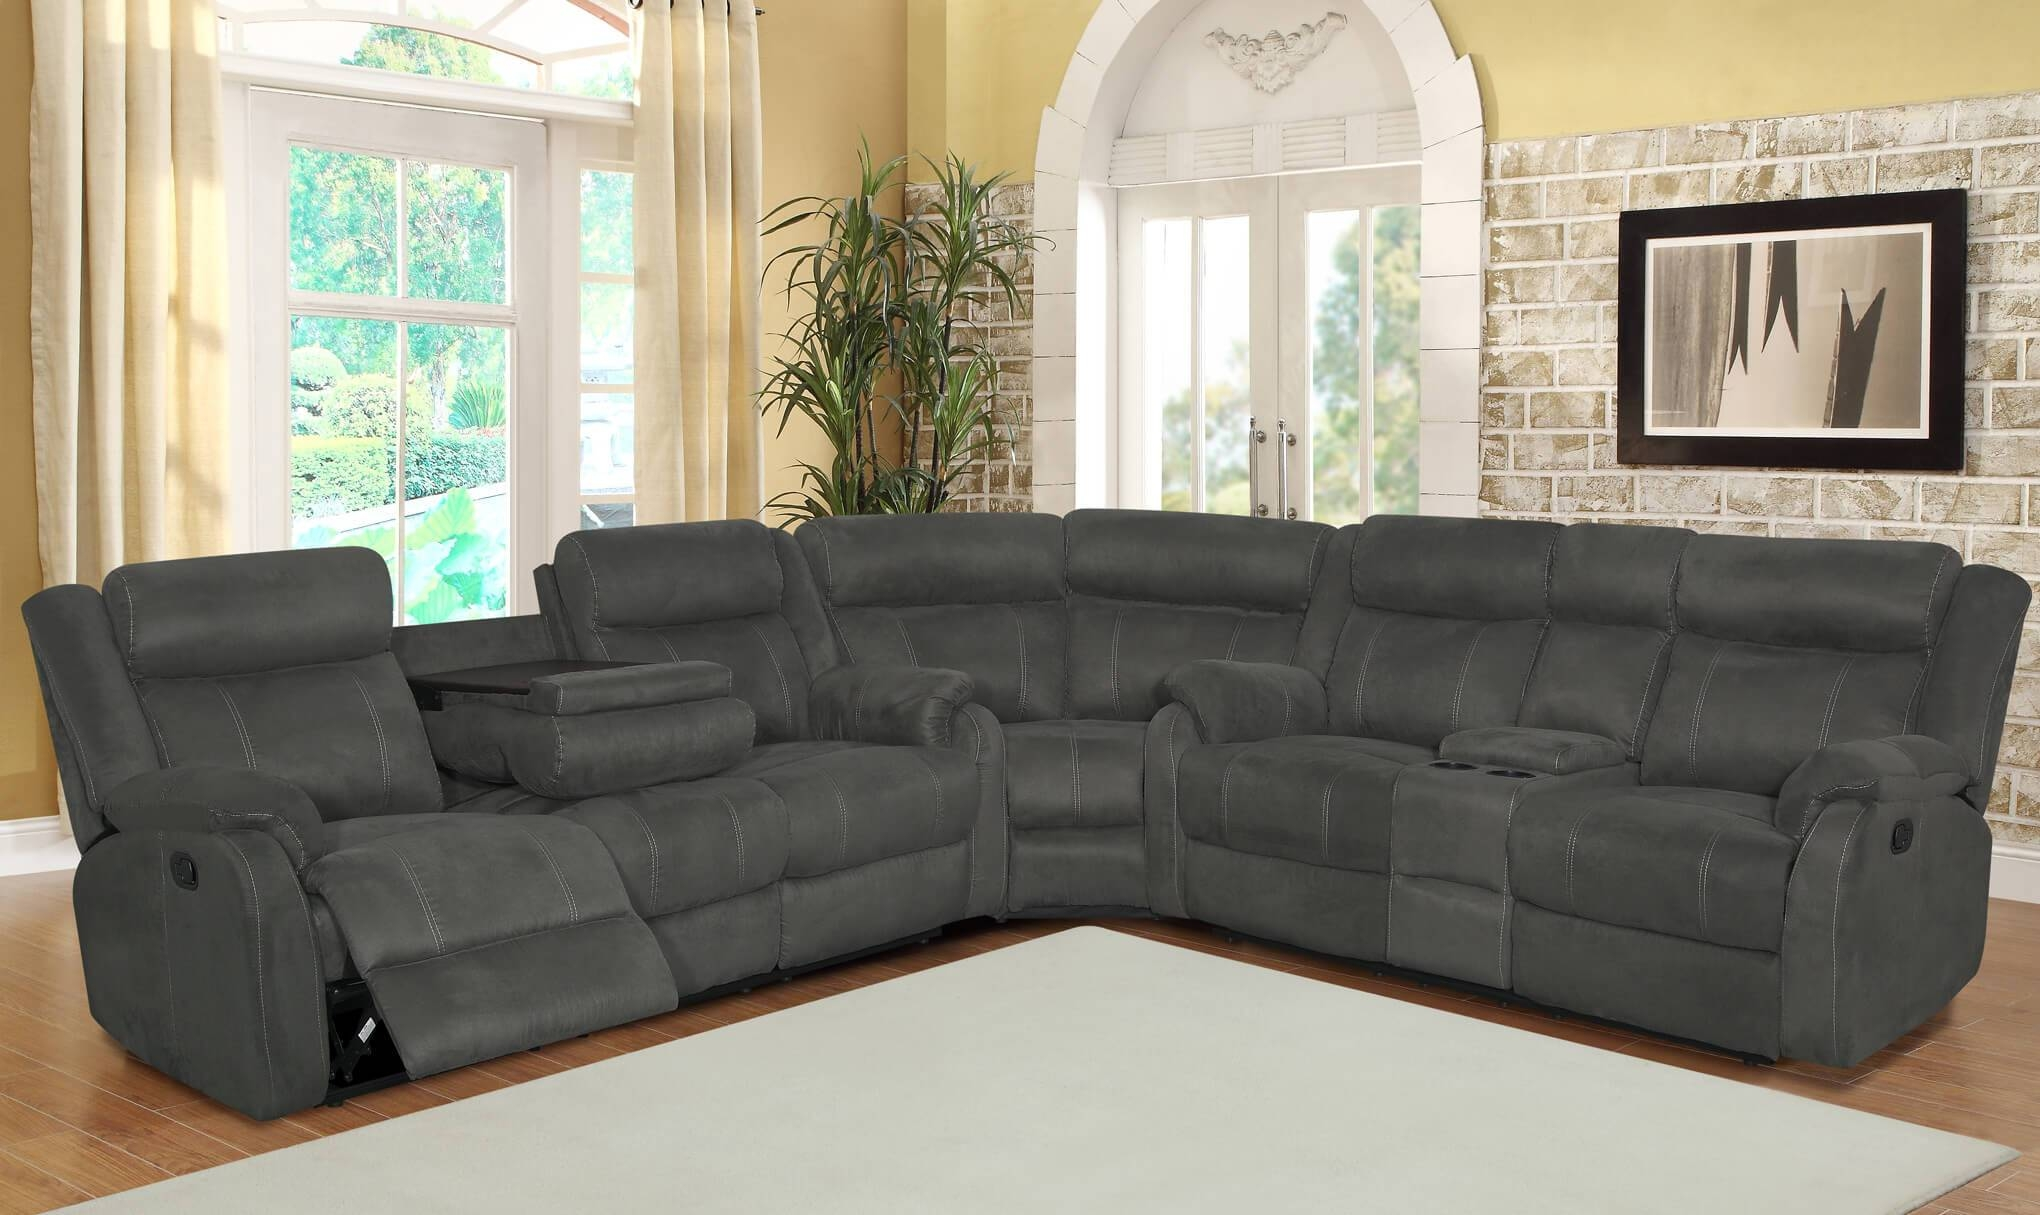 Java Reclining Sectional | Sectional Sofa Sets in Recliner Sectional Sofas (Image 20 of 30)